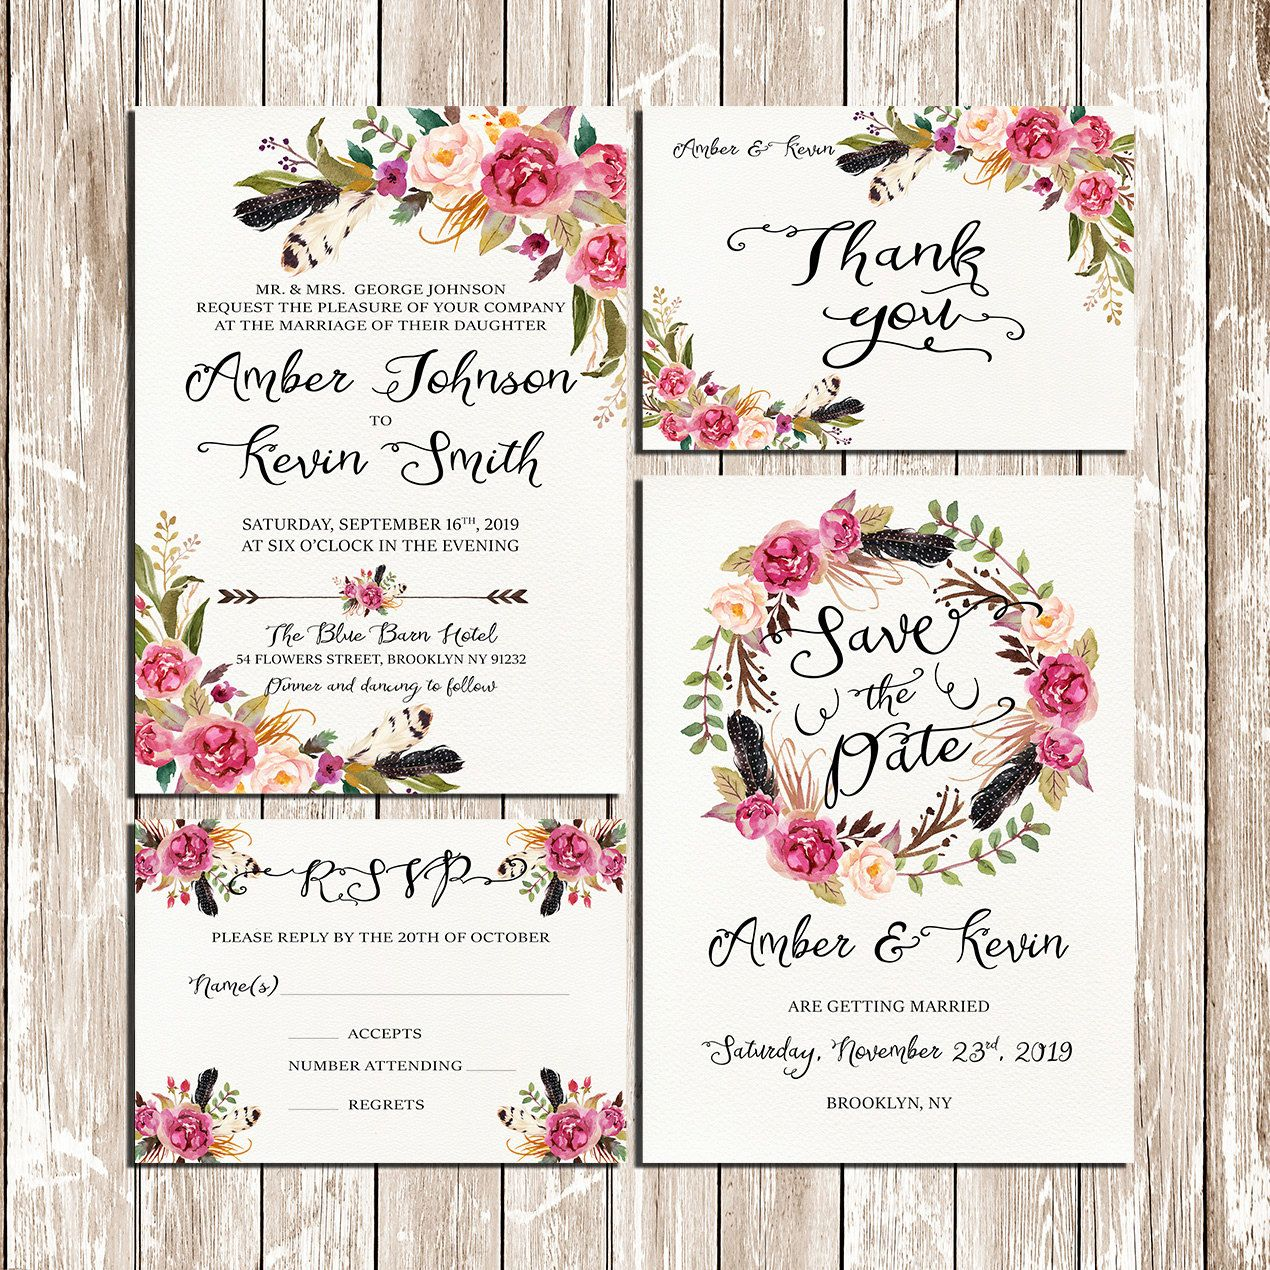 Flowers And Feathers Bohemian Floral Wreath Wedding Invitation Kit Pink Rustic Boho Watercolor Set